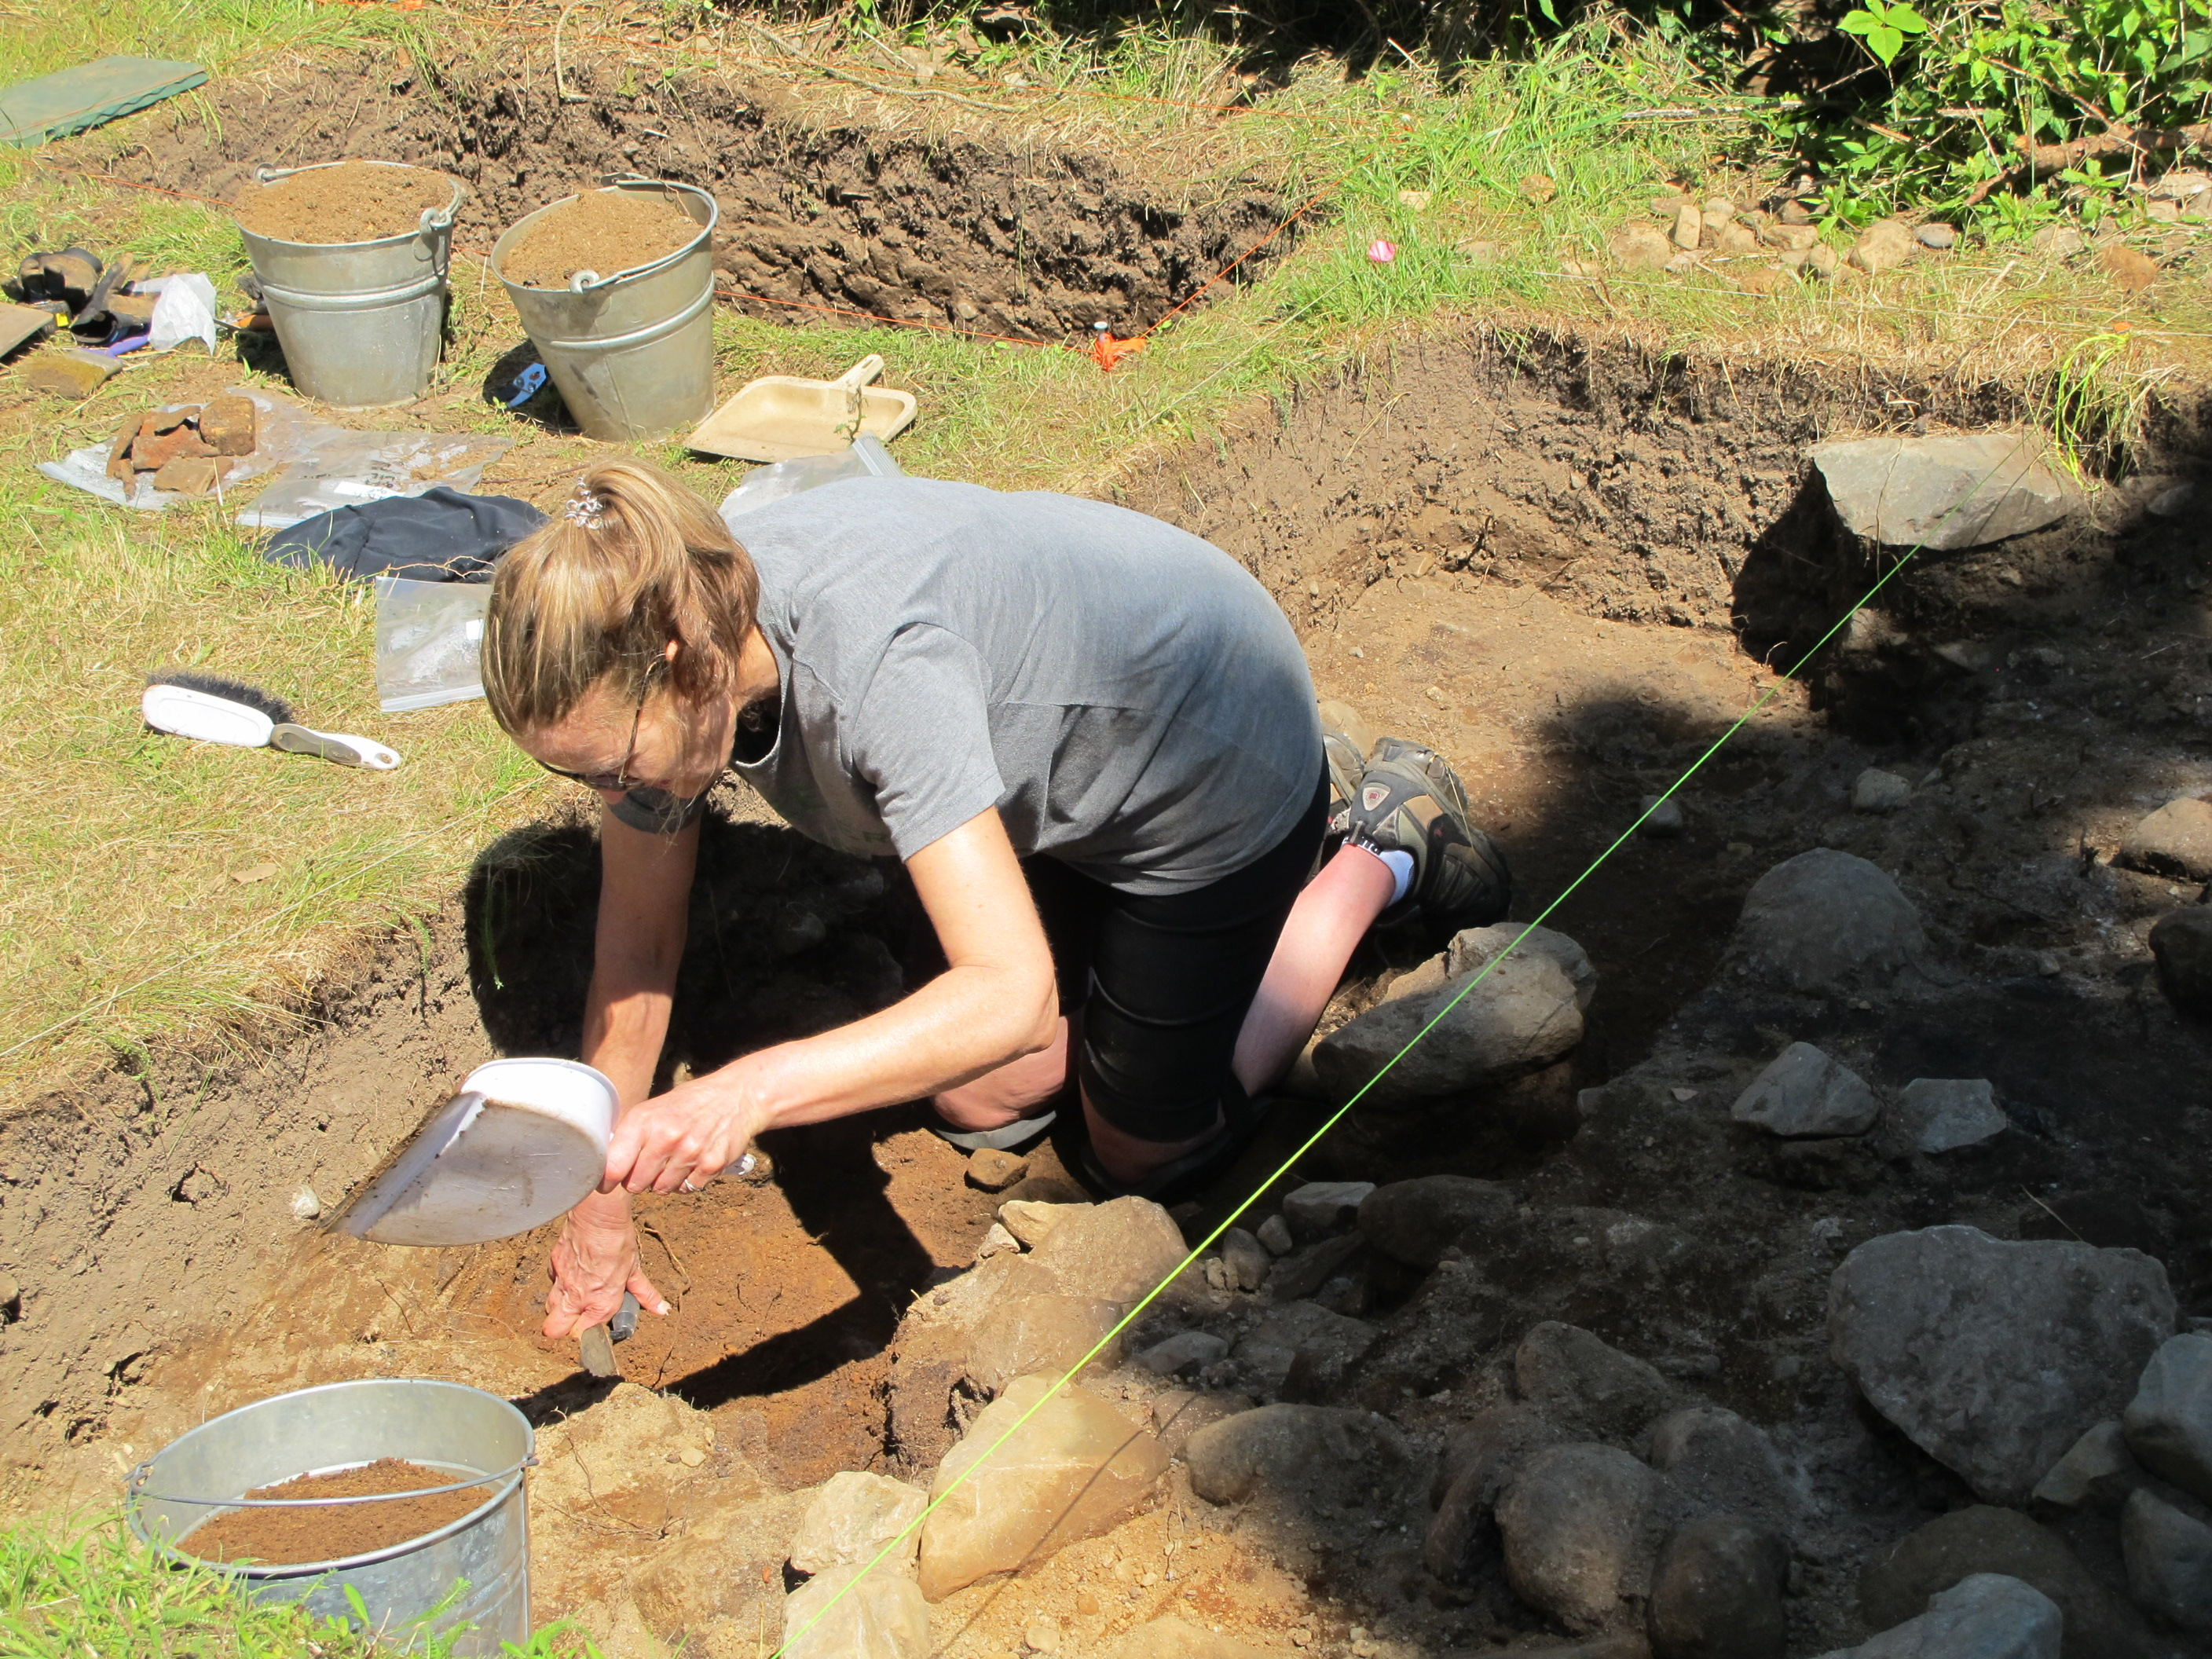 Heather of AFN joined us again this year. Today she is working in an area where we uncovered a new stone wall.